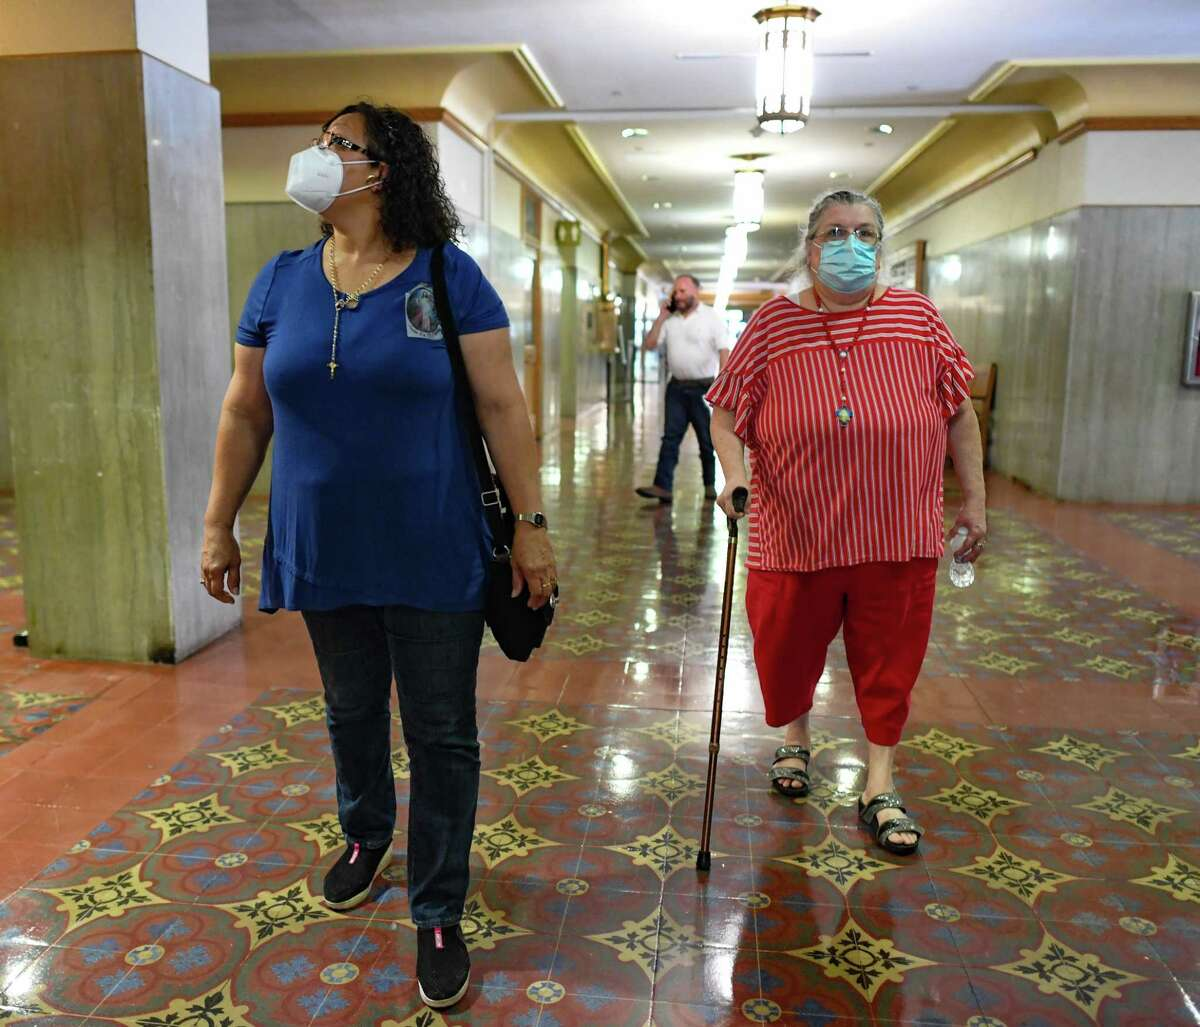 """Elsa Nieves, left, and Maria Sartor wear masks in the Bexar County Courthouse on Tuesday, Aug. 10, 2021. """"You have to be out of your mind to not wear one,"""" Sartor said. A new executive order from County Judge Nelson Wolff requires all people in Bexar County facilities to do likewise."""